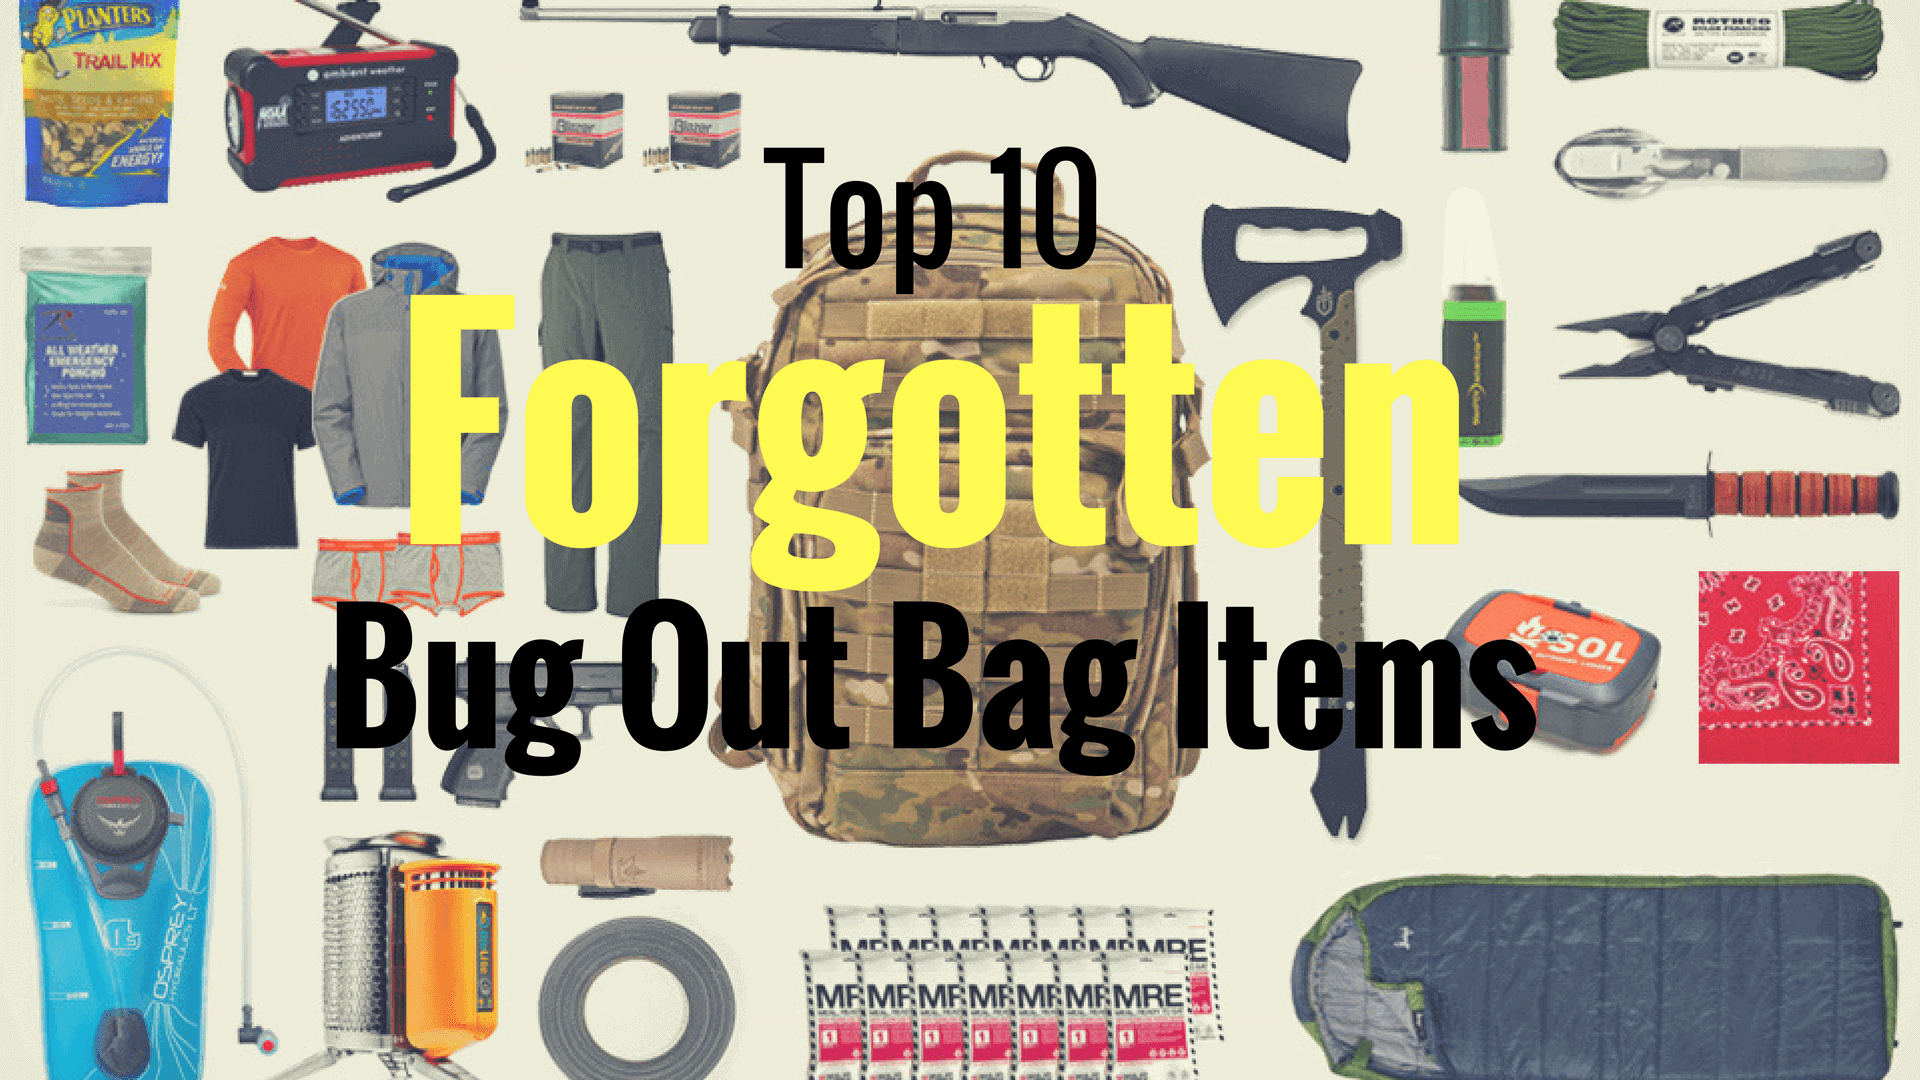 Top 10 Forgotten bug Out Items